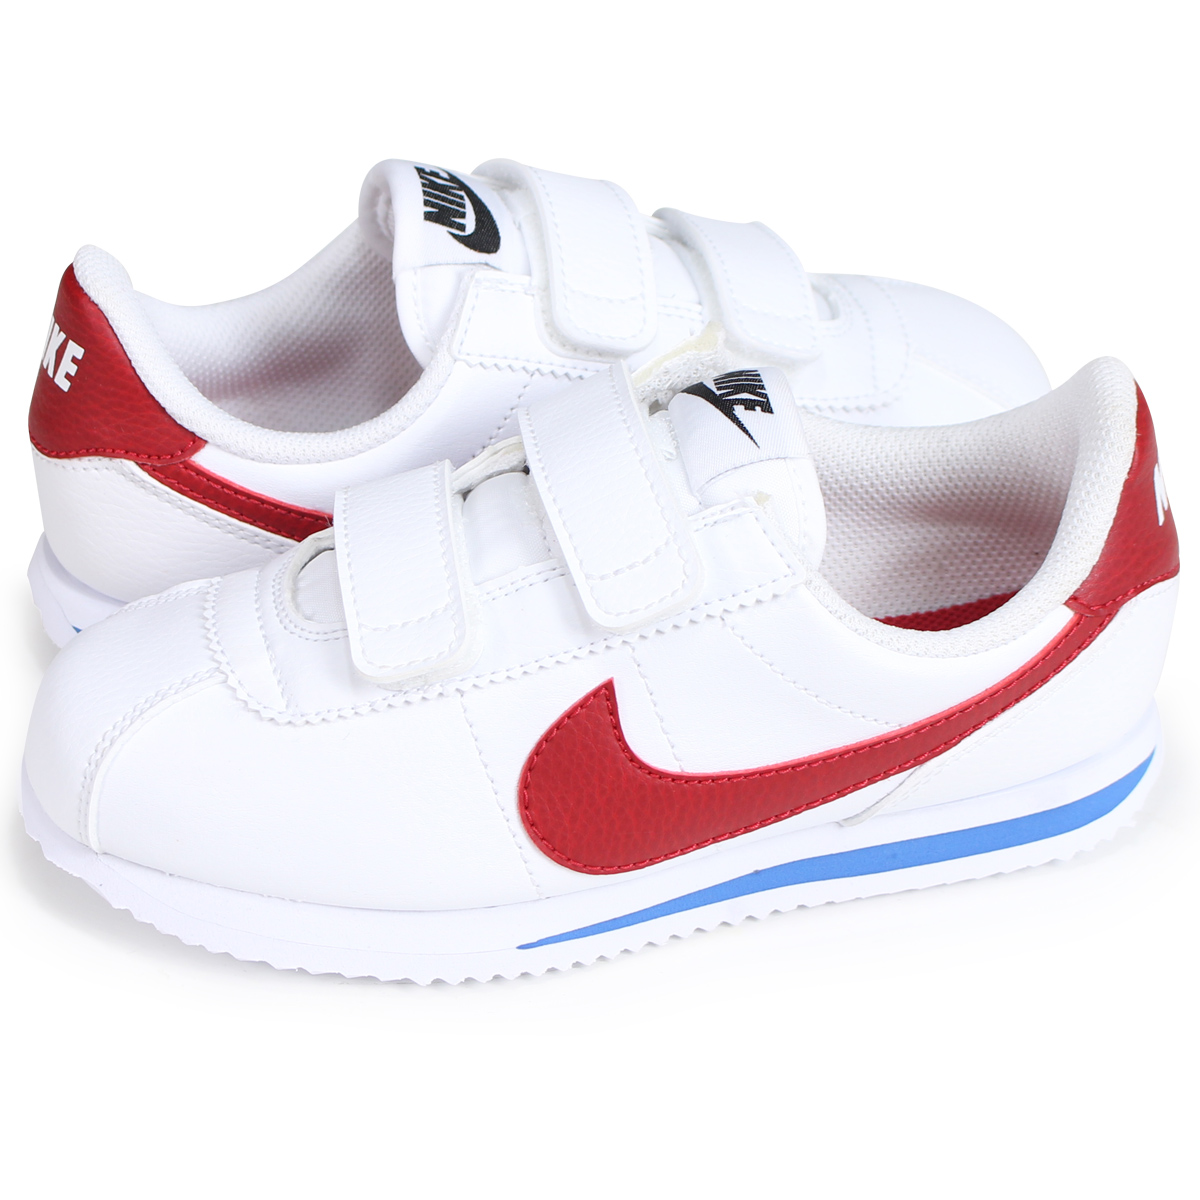 huge selection of 320e4 468f4 NIKE CORTEZ BASIC SL PSV ナイキコルテッツキッズスニーカー 904,767-103 white  load planned  Shinnyu load in reservation product 7 7 containing